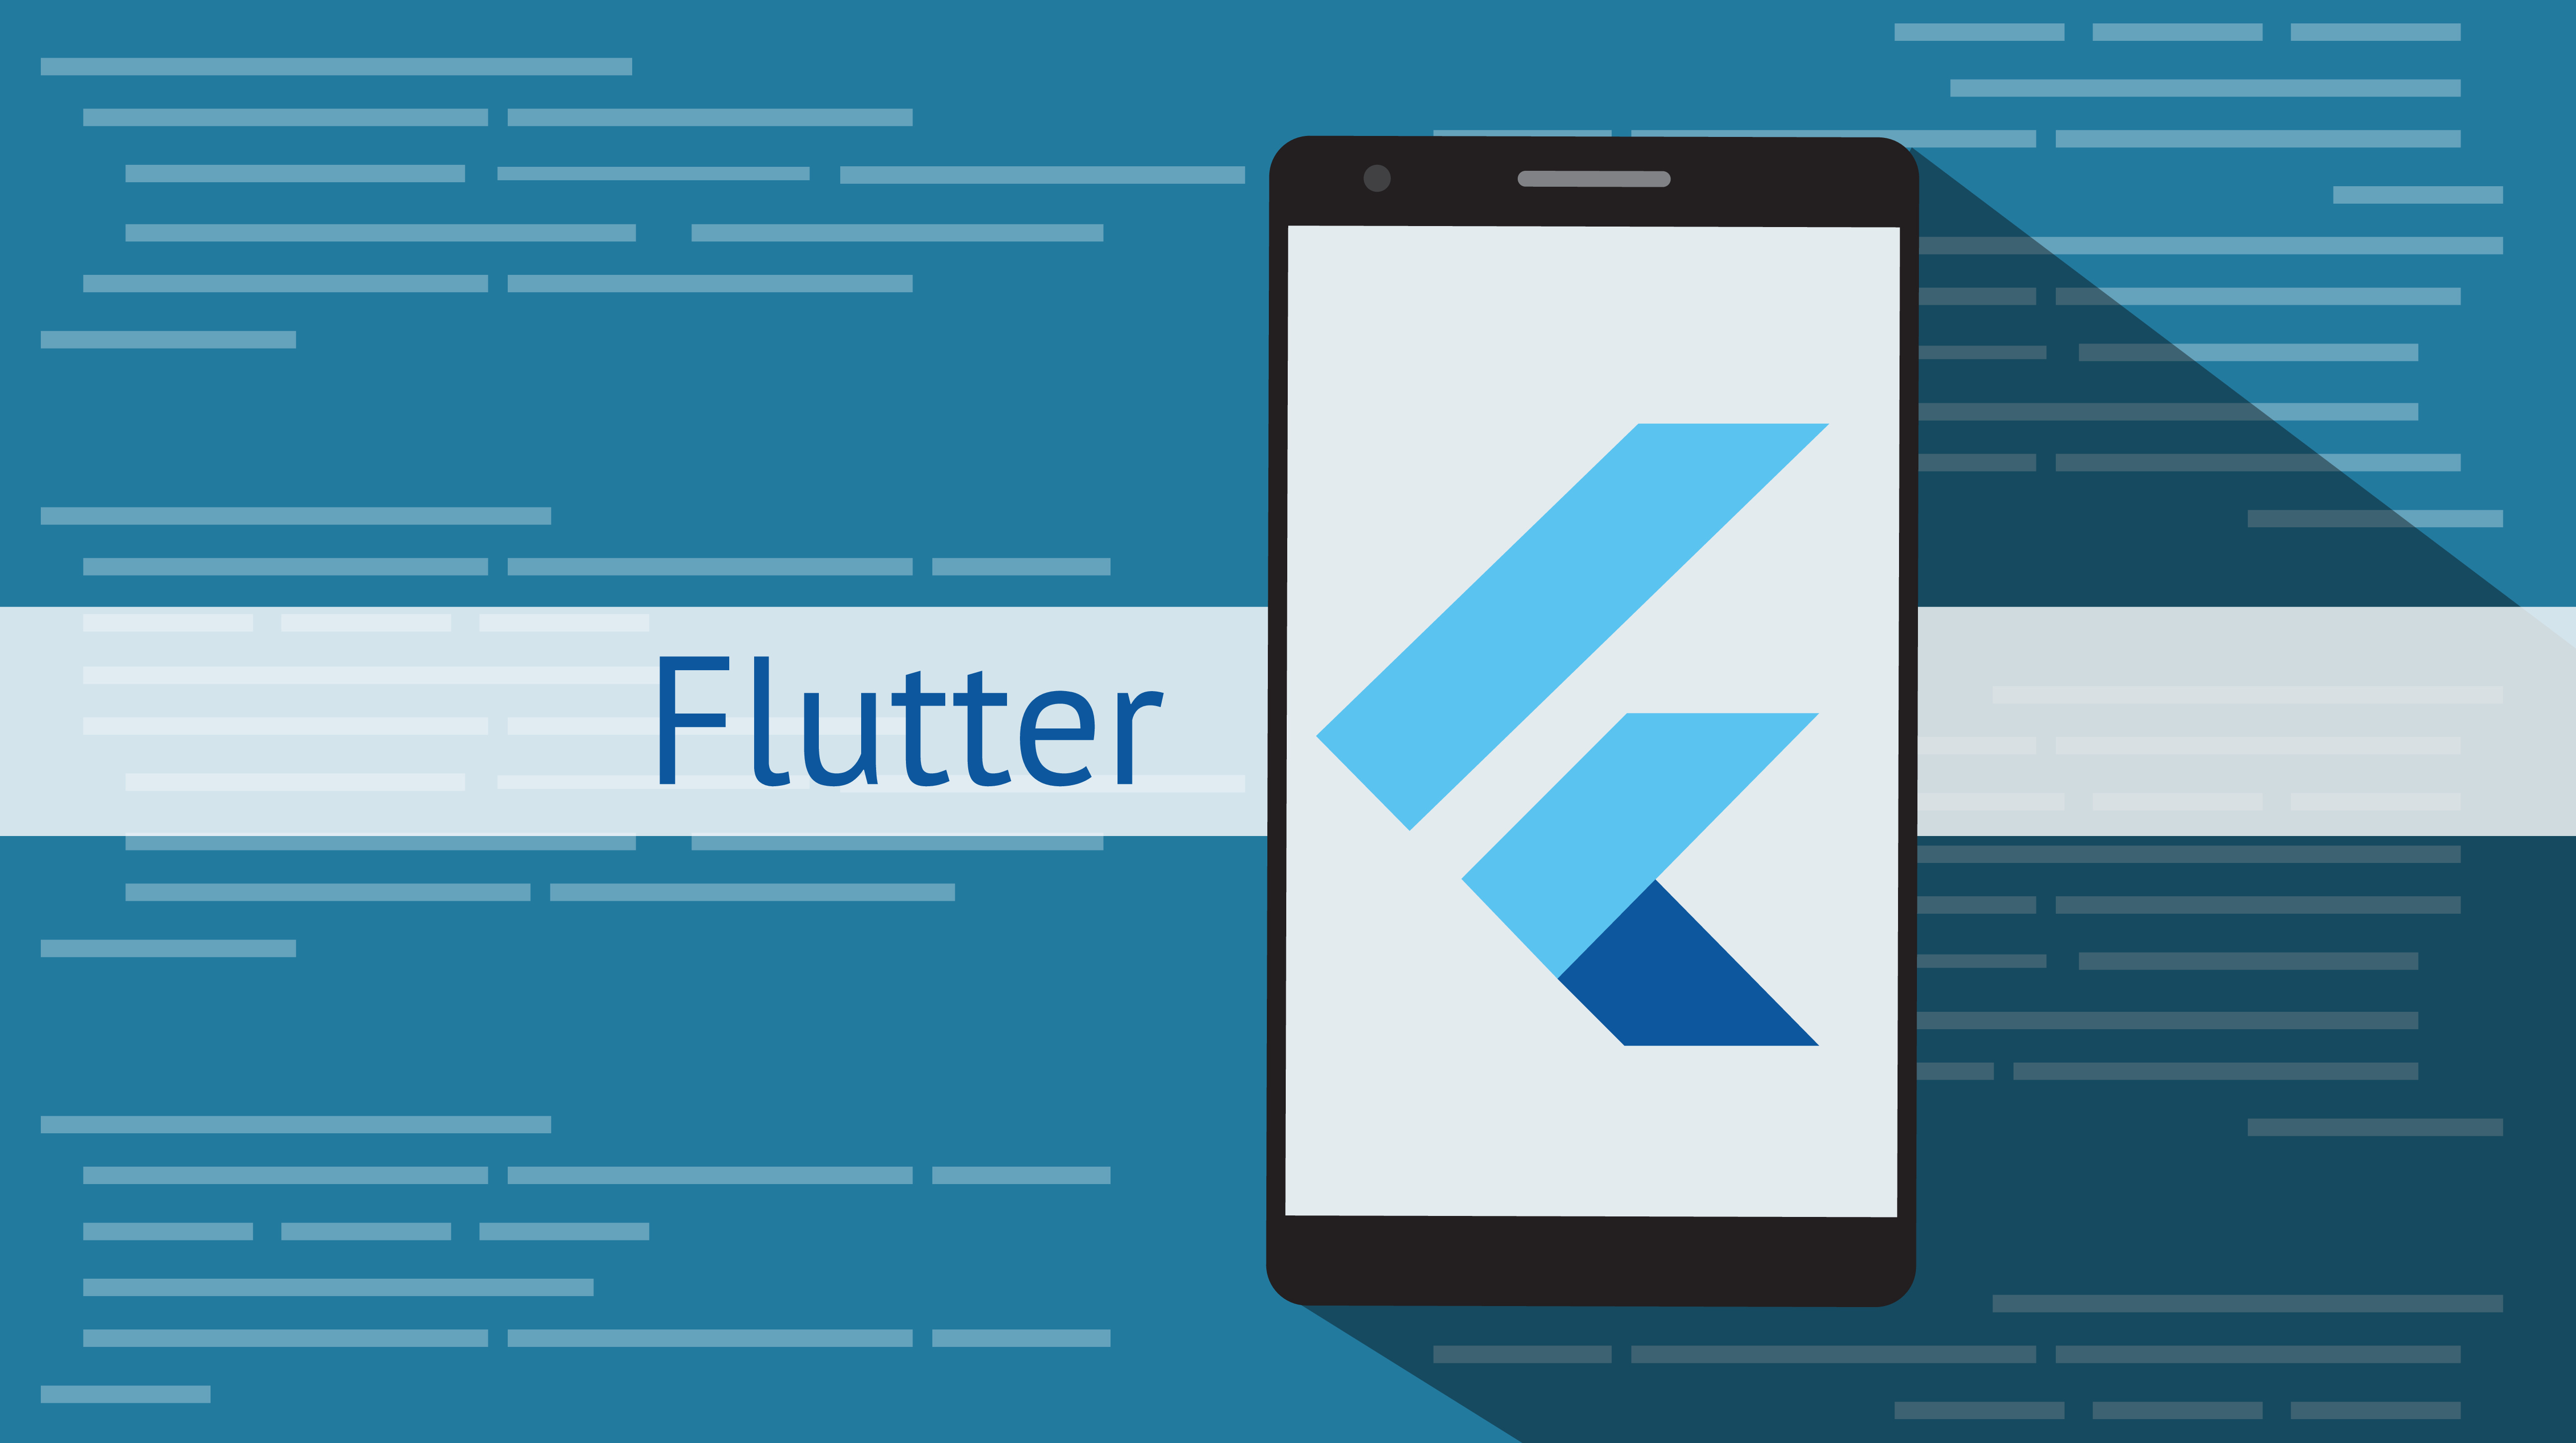 Google´s UI kit Flutter helps creating apps for mobile and desktop